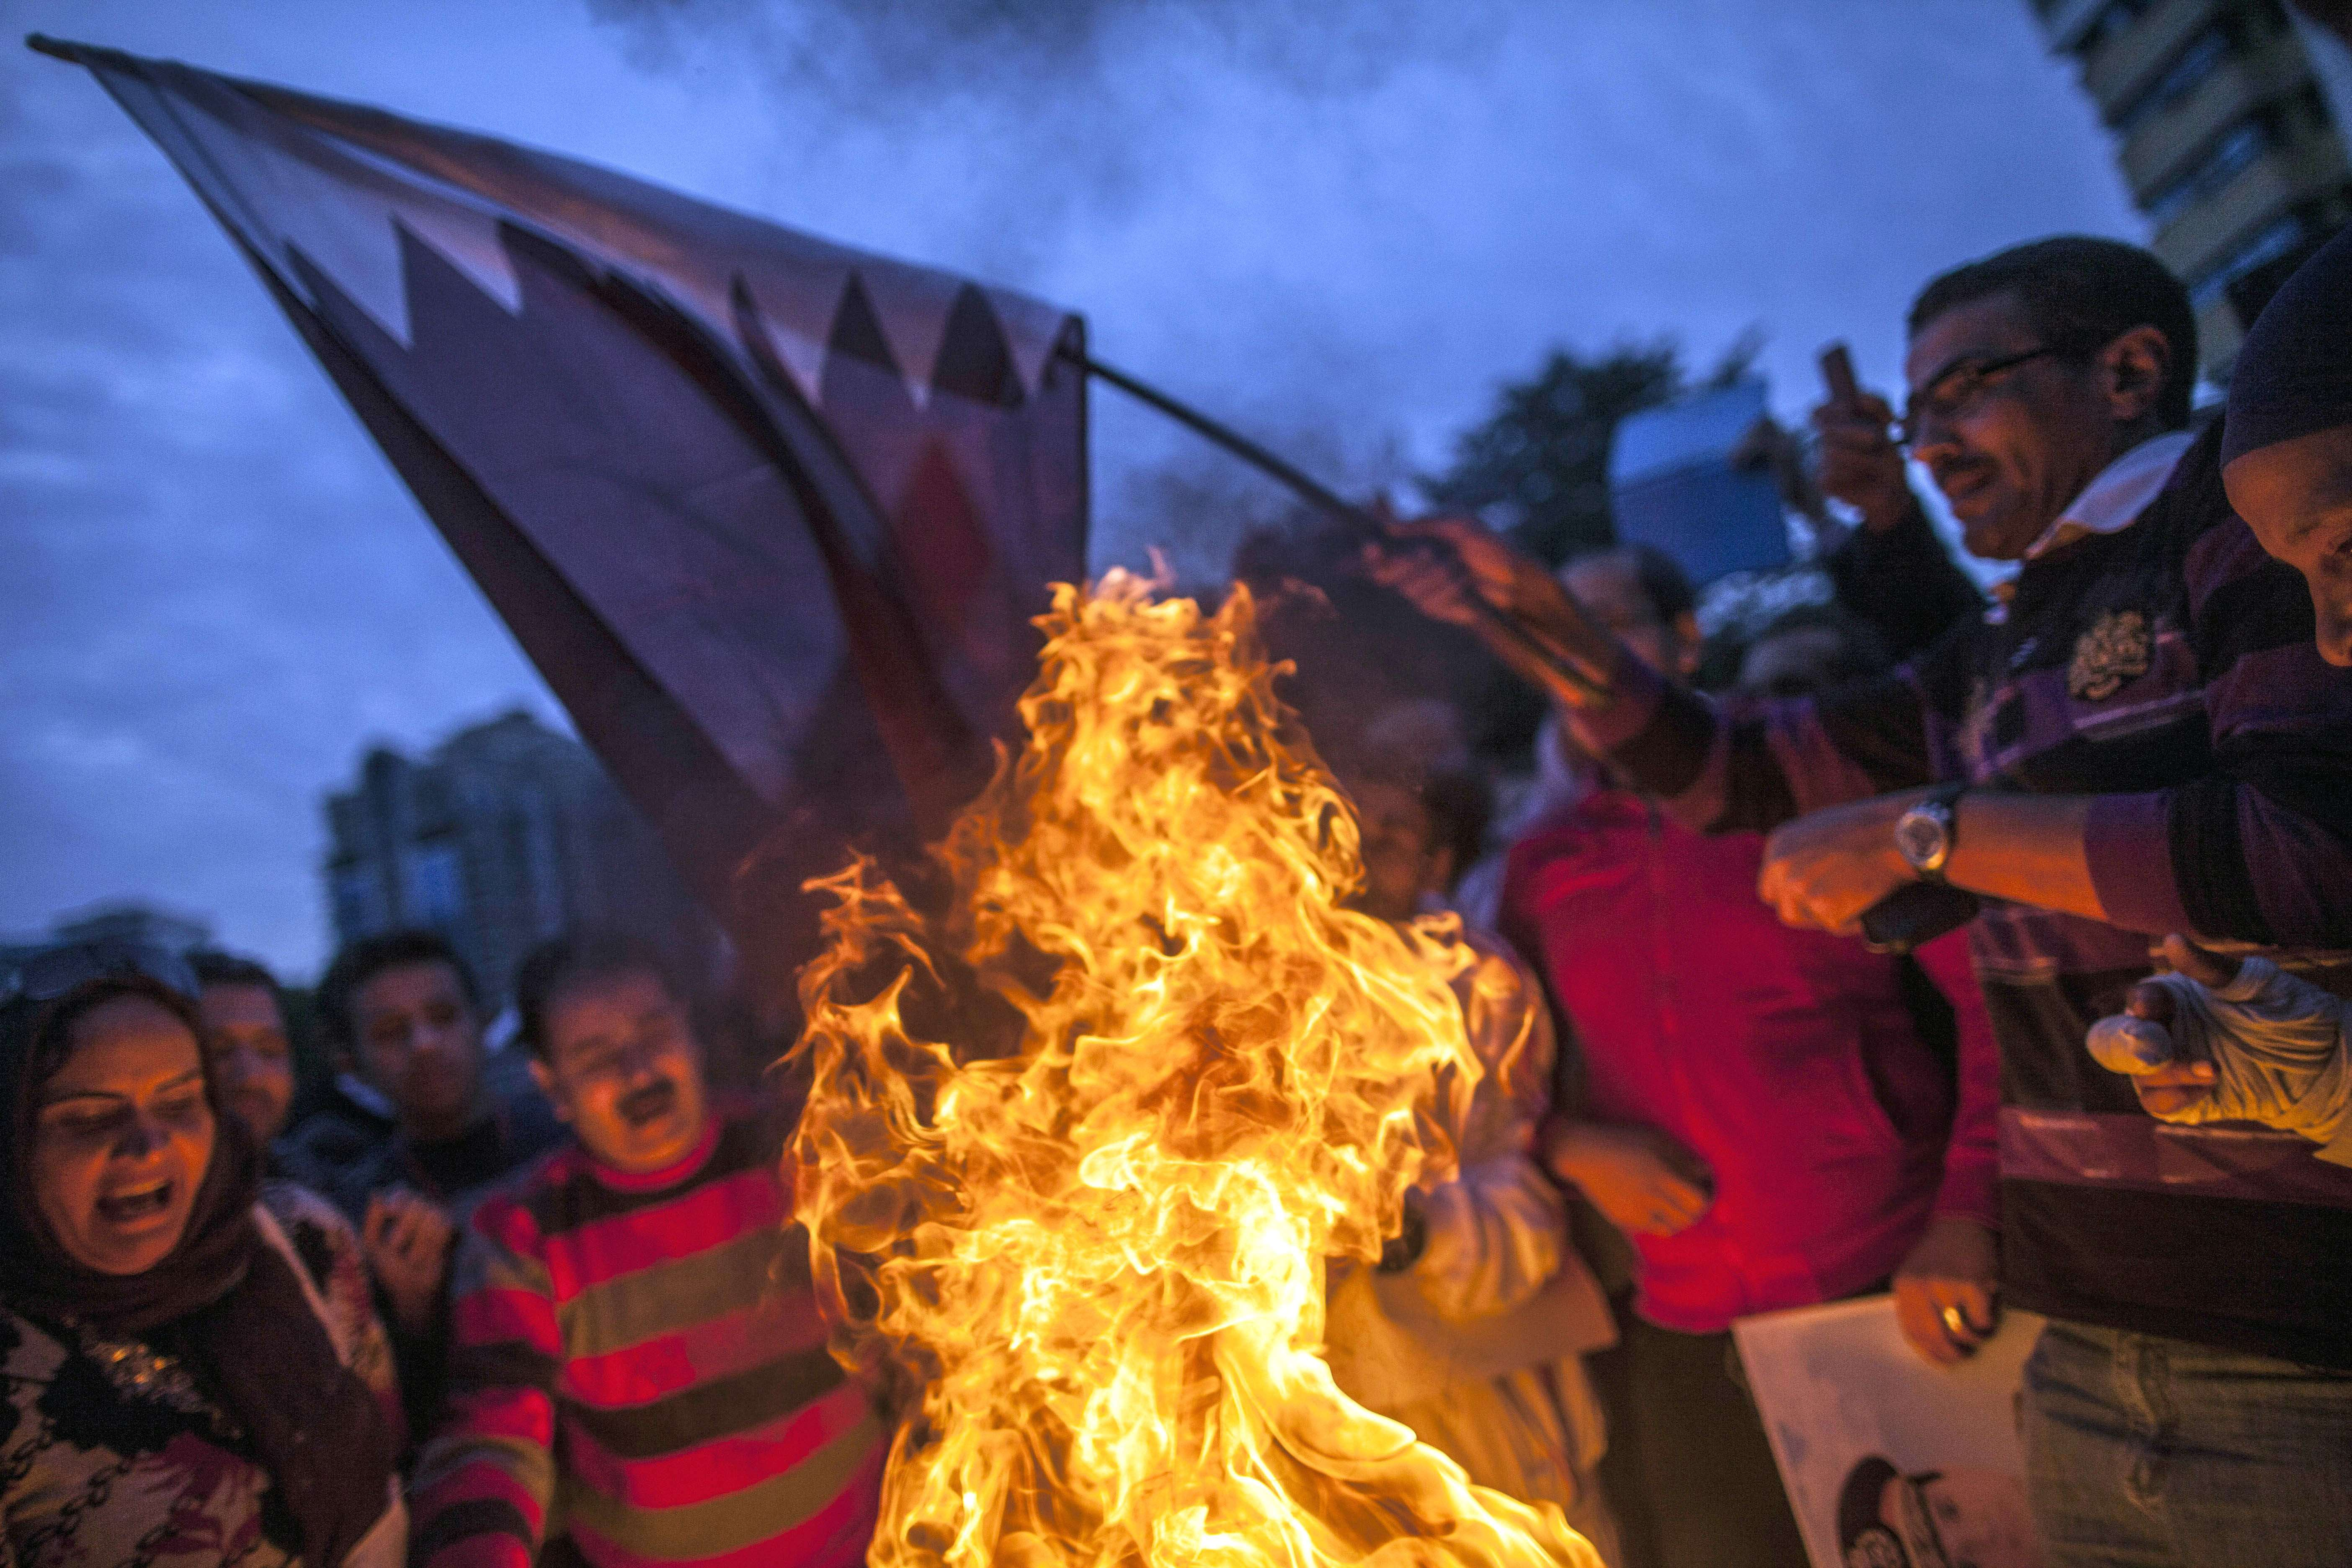 Supporters of Egypt's military chief Abdel Fattah al-Sisi burn a Qatari national flag during a demonstration outside the Qatari embassy in Cairo on November 30, 2013. (AFP PHOTO/MAHMOUD KHALED)